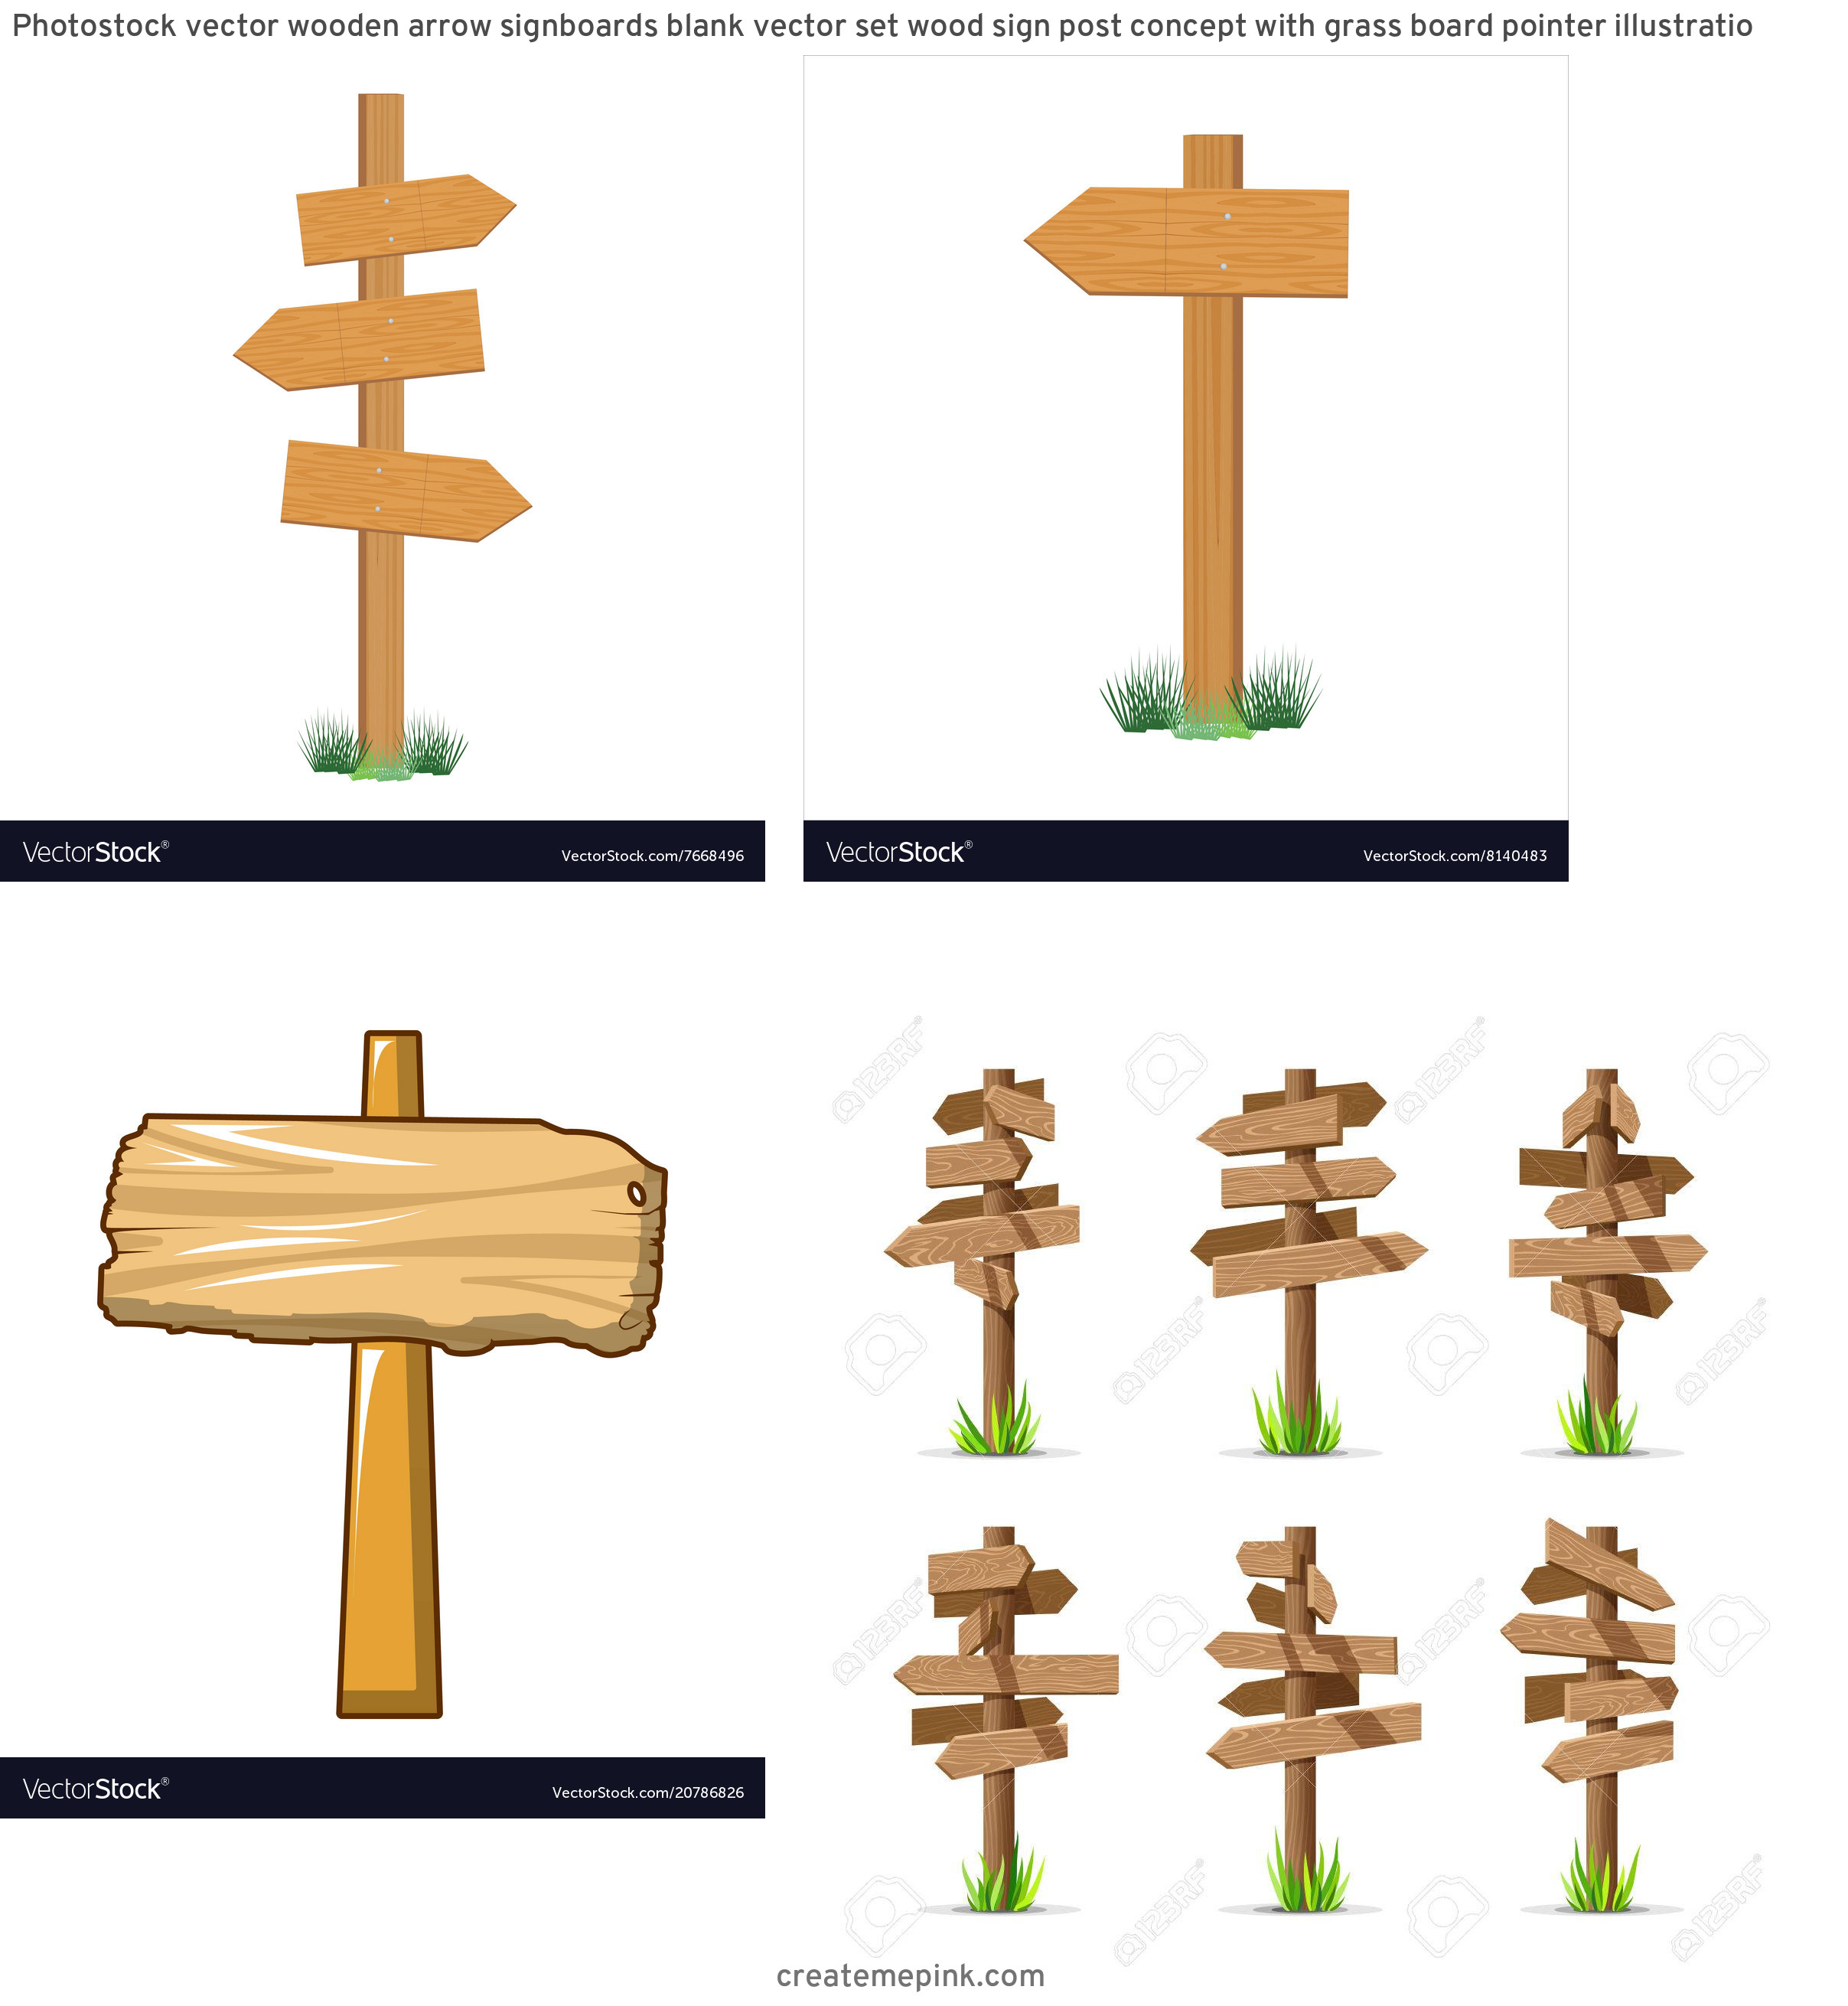 Wooden Sign Post Vector: Photostock Vector Wooden Arrow Signboards Blank Vector Set Wood Sign Post Concept With Grass Board Pointer Illustratio